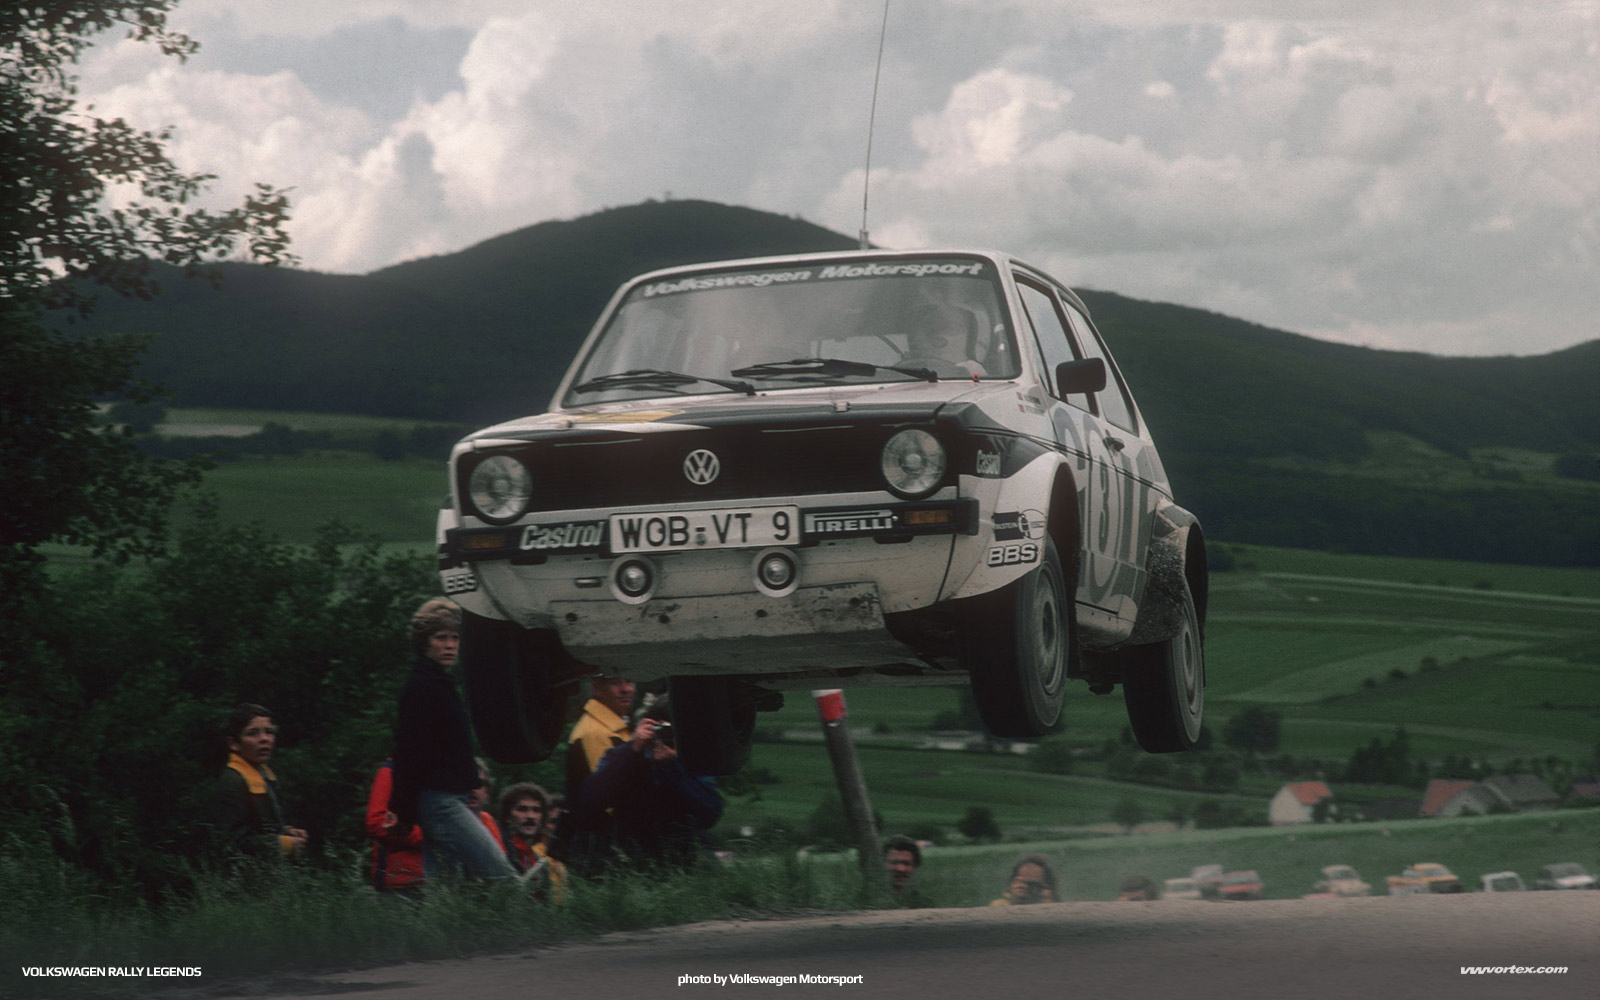 volkswagen-rally-legends-406